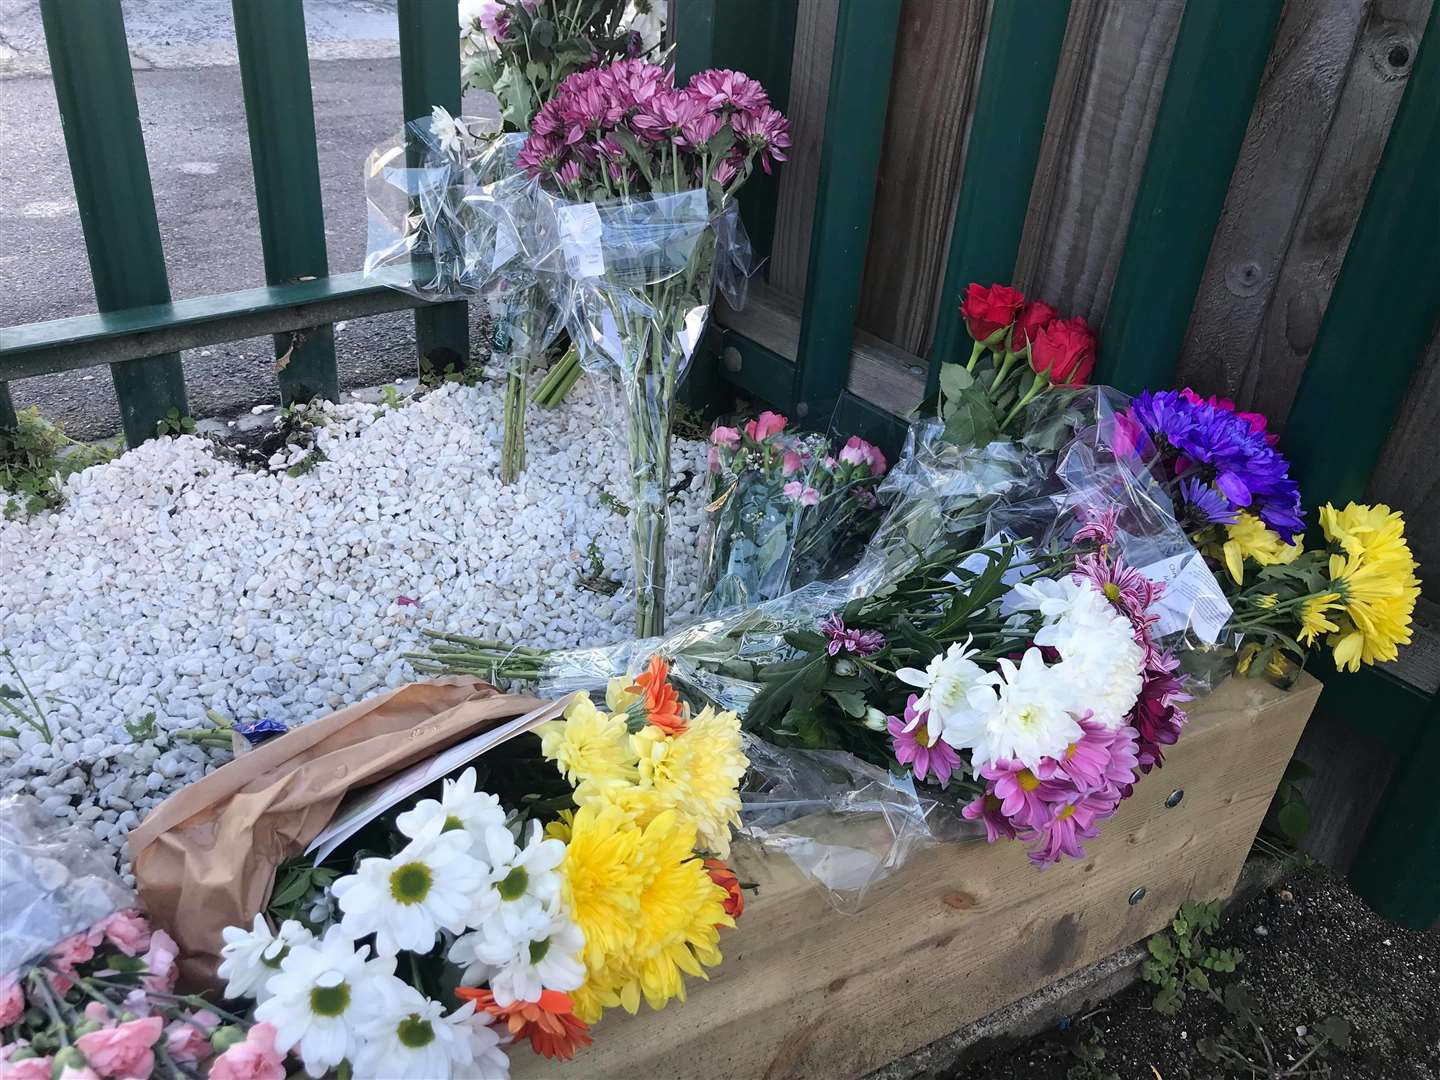 Floral tributes have been left outside St Edward's Primary School